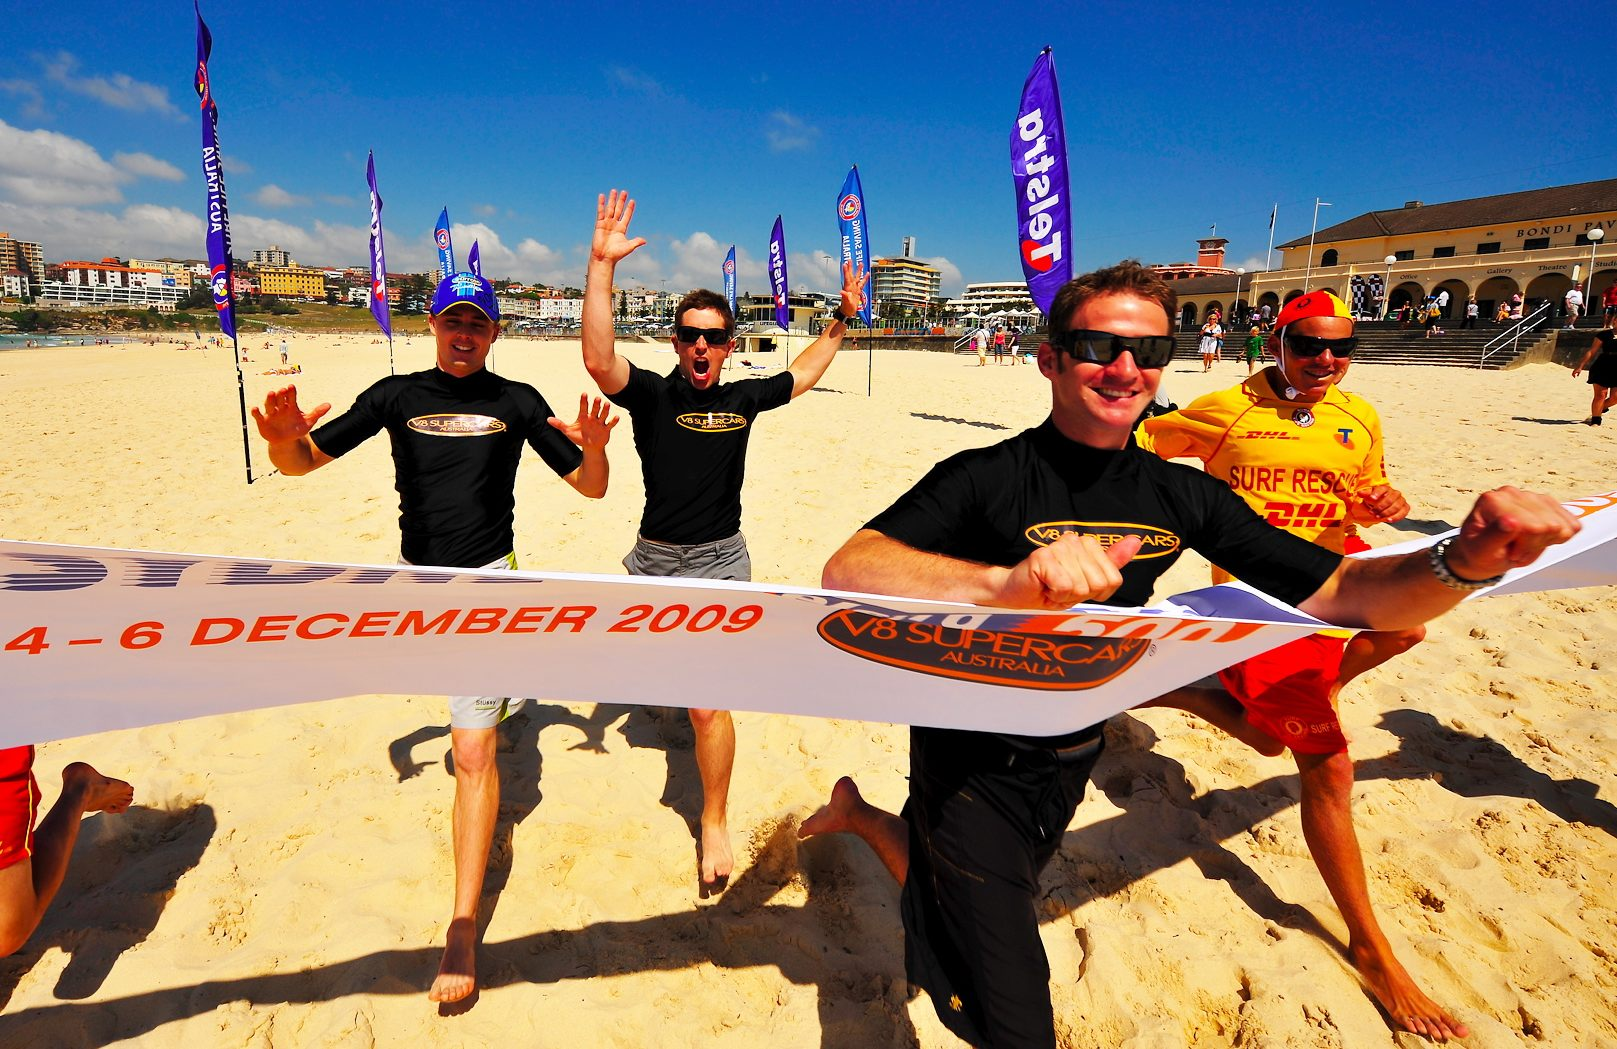 Life's a beach for V8 Supercar drivers